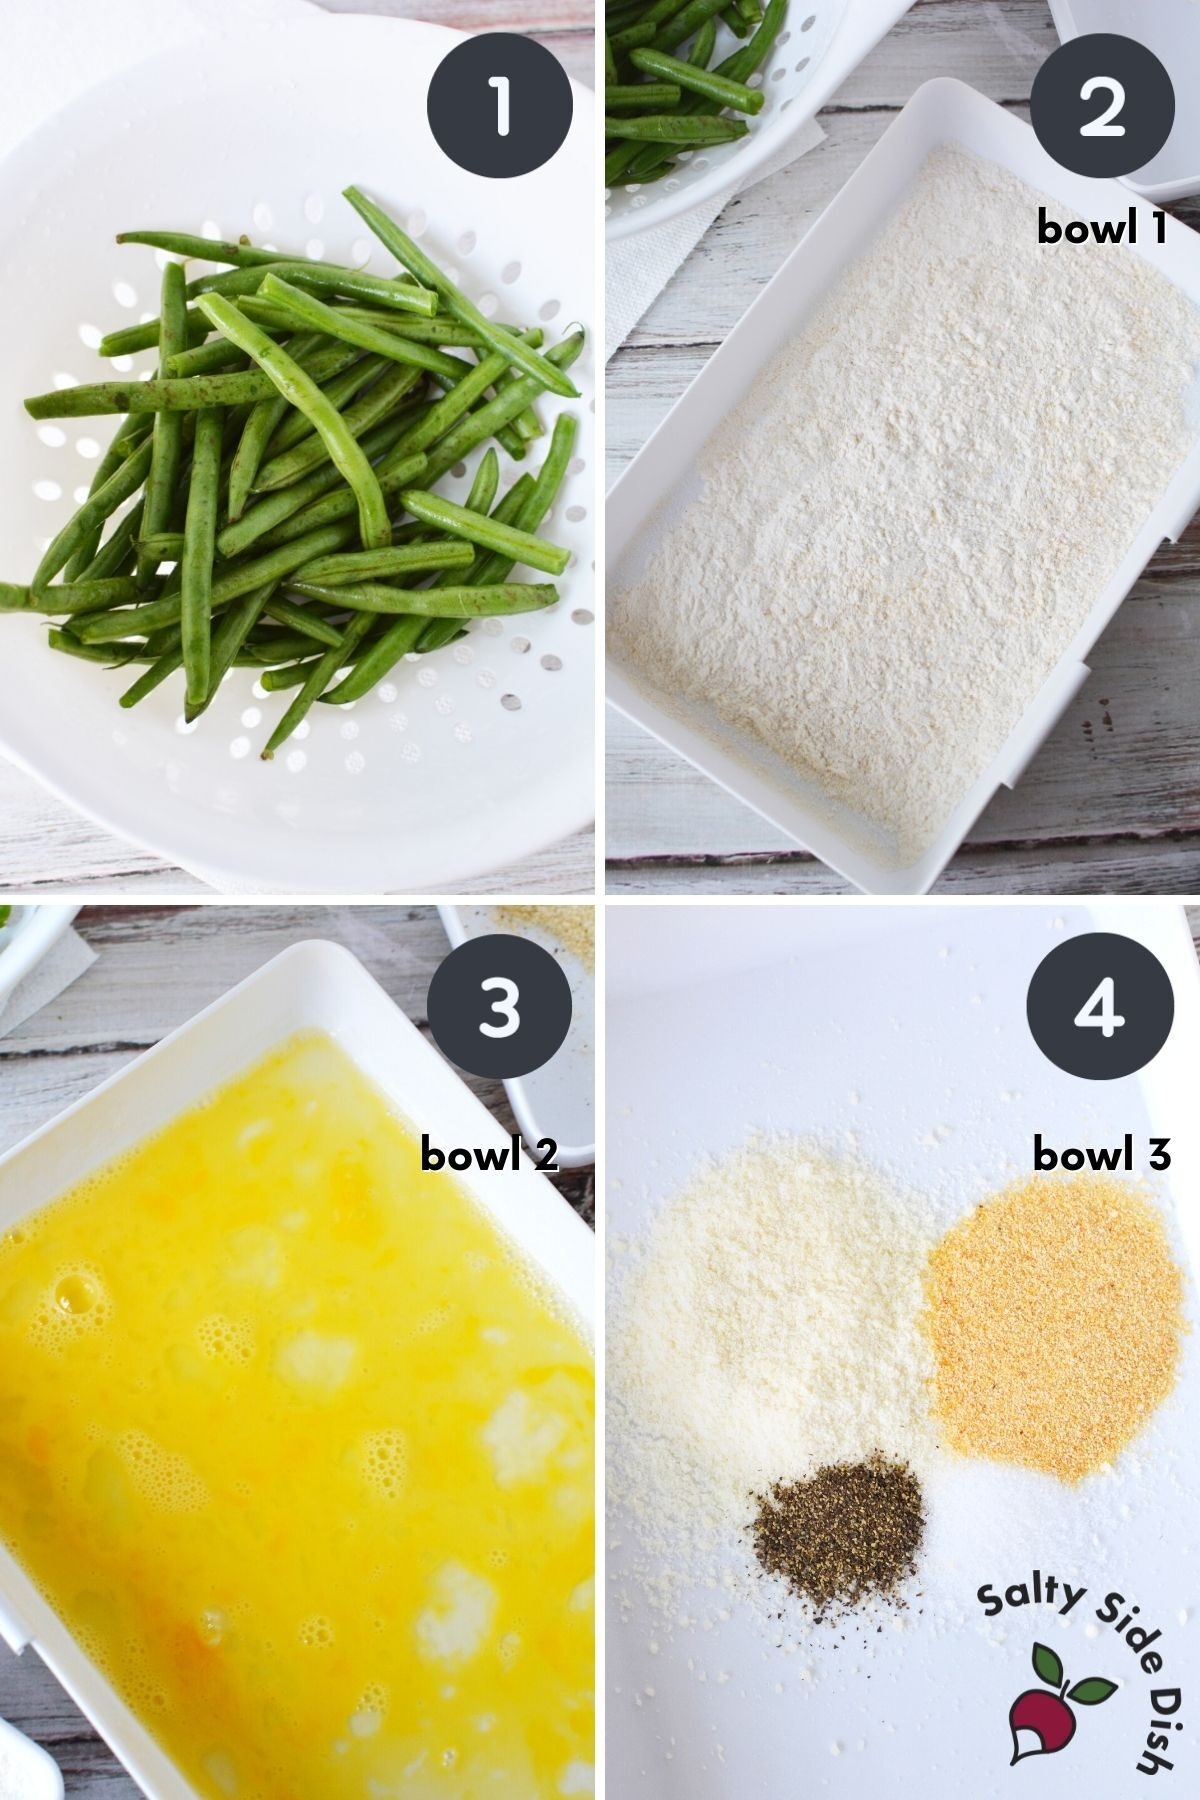 collage of 4 images showing how to coat green beans for air fryer.